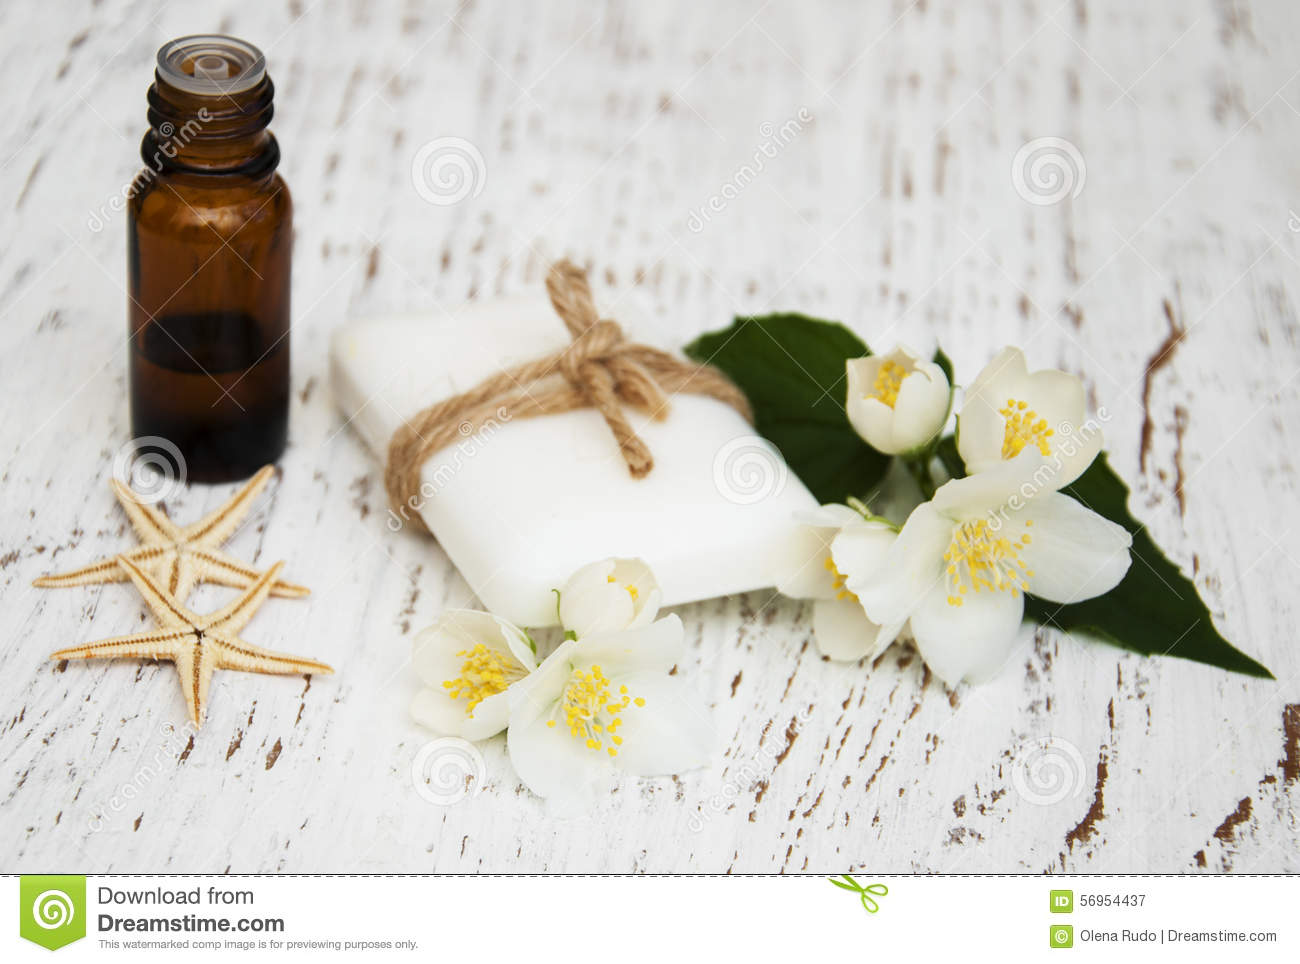 how to make jasmine oil from flowers